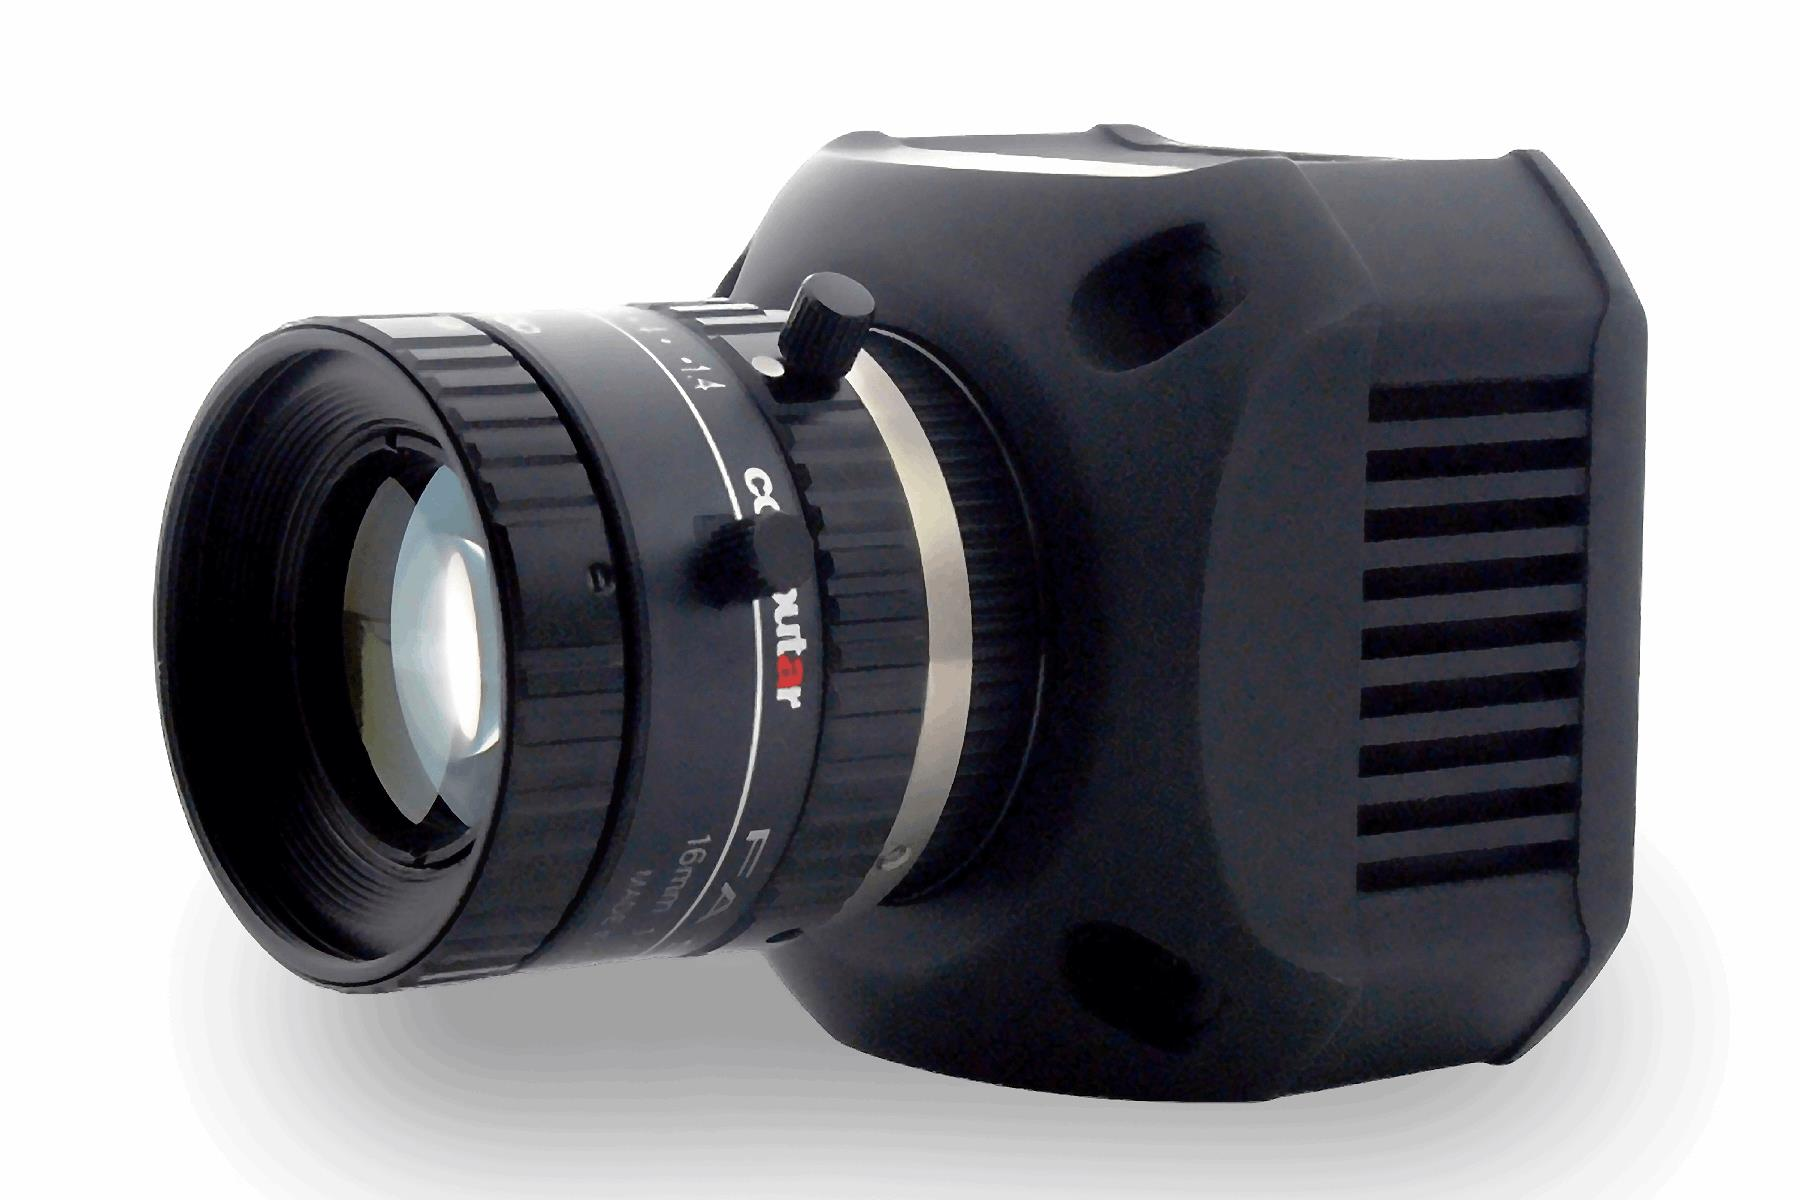 InGaAs Camera Market Report Will Reach at a Healthy CAGR of 9.60% in 2019-2026 by Competitors Photon Interactive UK Limited., Hamamatsu Photonics K.K., First Sensor AG, Jenoptik AG, Others